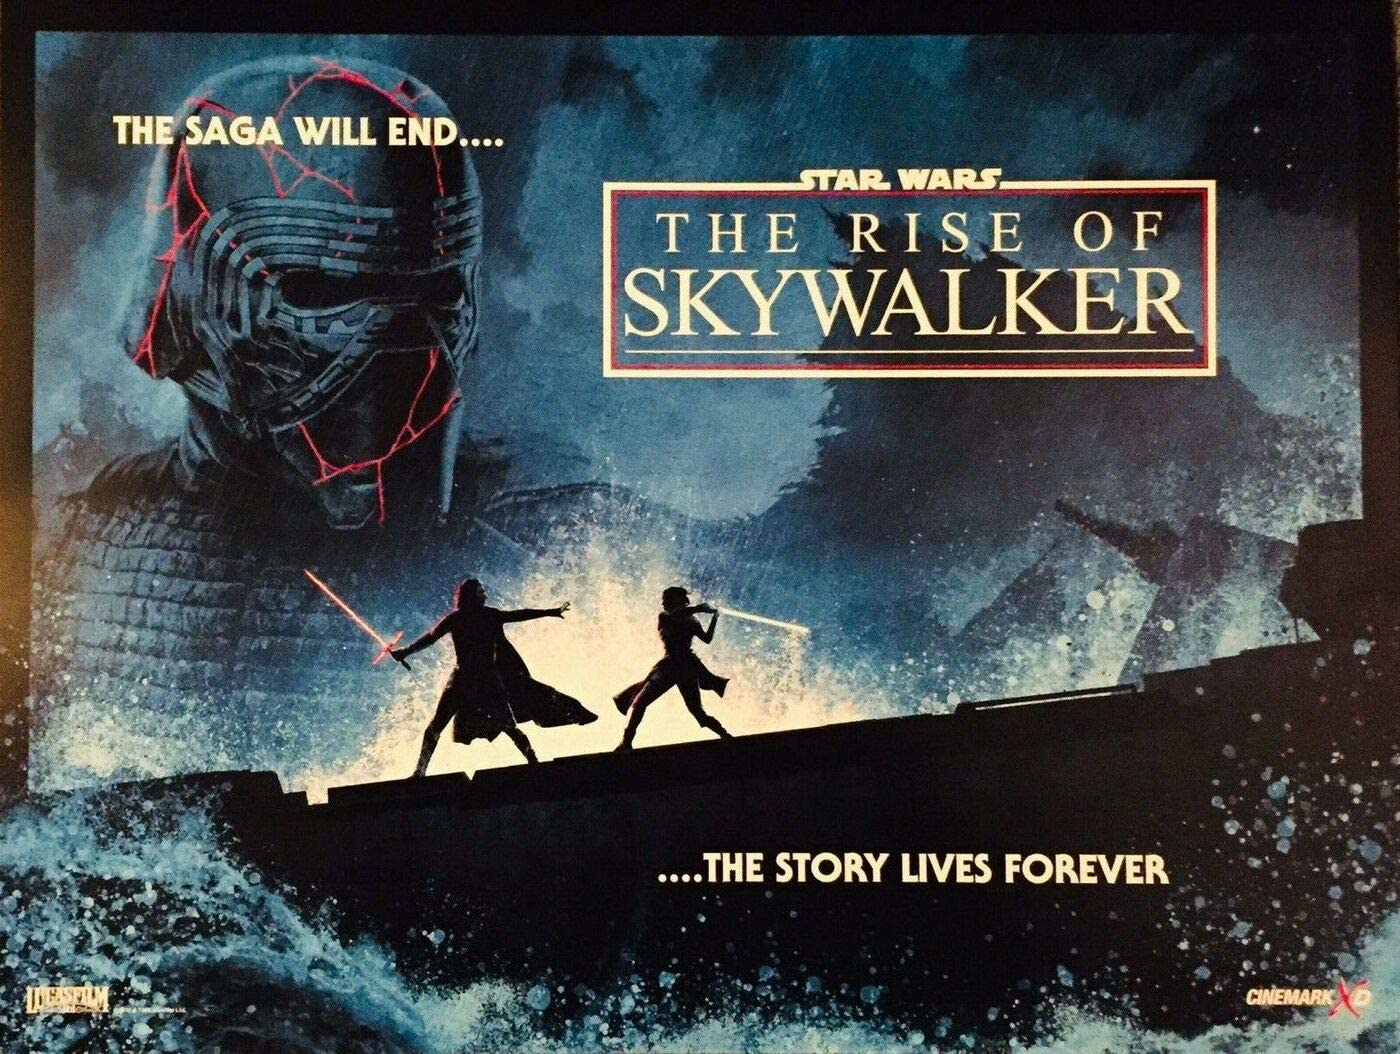 Star Wars The Rise Of Skywalker 13 25 X17 5 Original Promo Movie Poster Cinemark 2019 At Amazon S Entertainment Collectibles Store